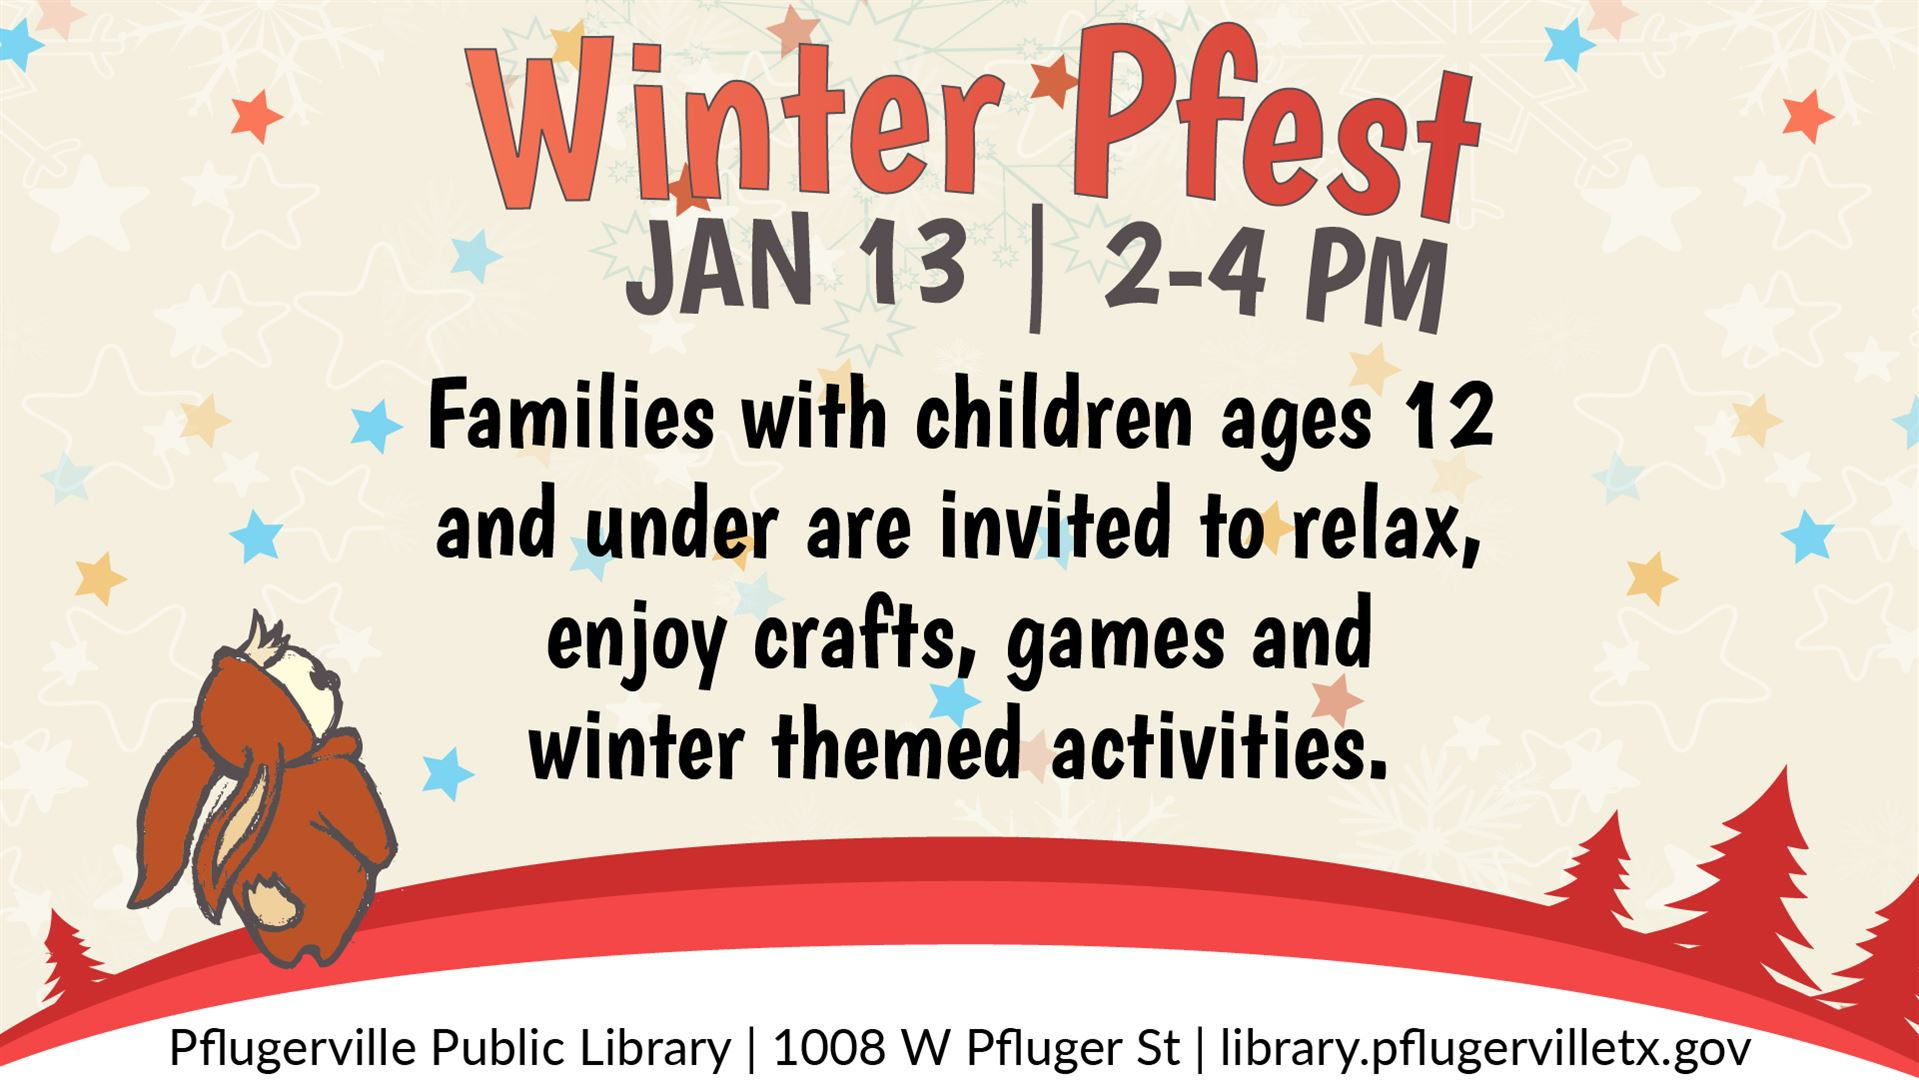 2018-01-13 Winter Pfest_resized